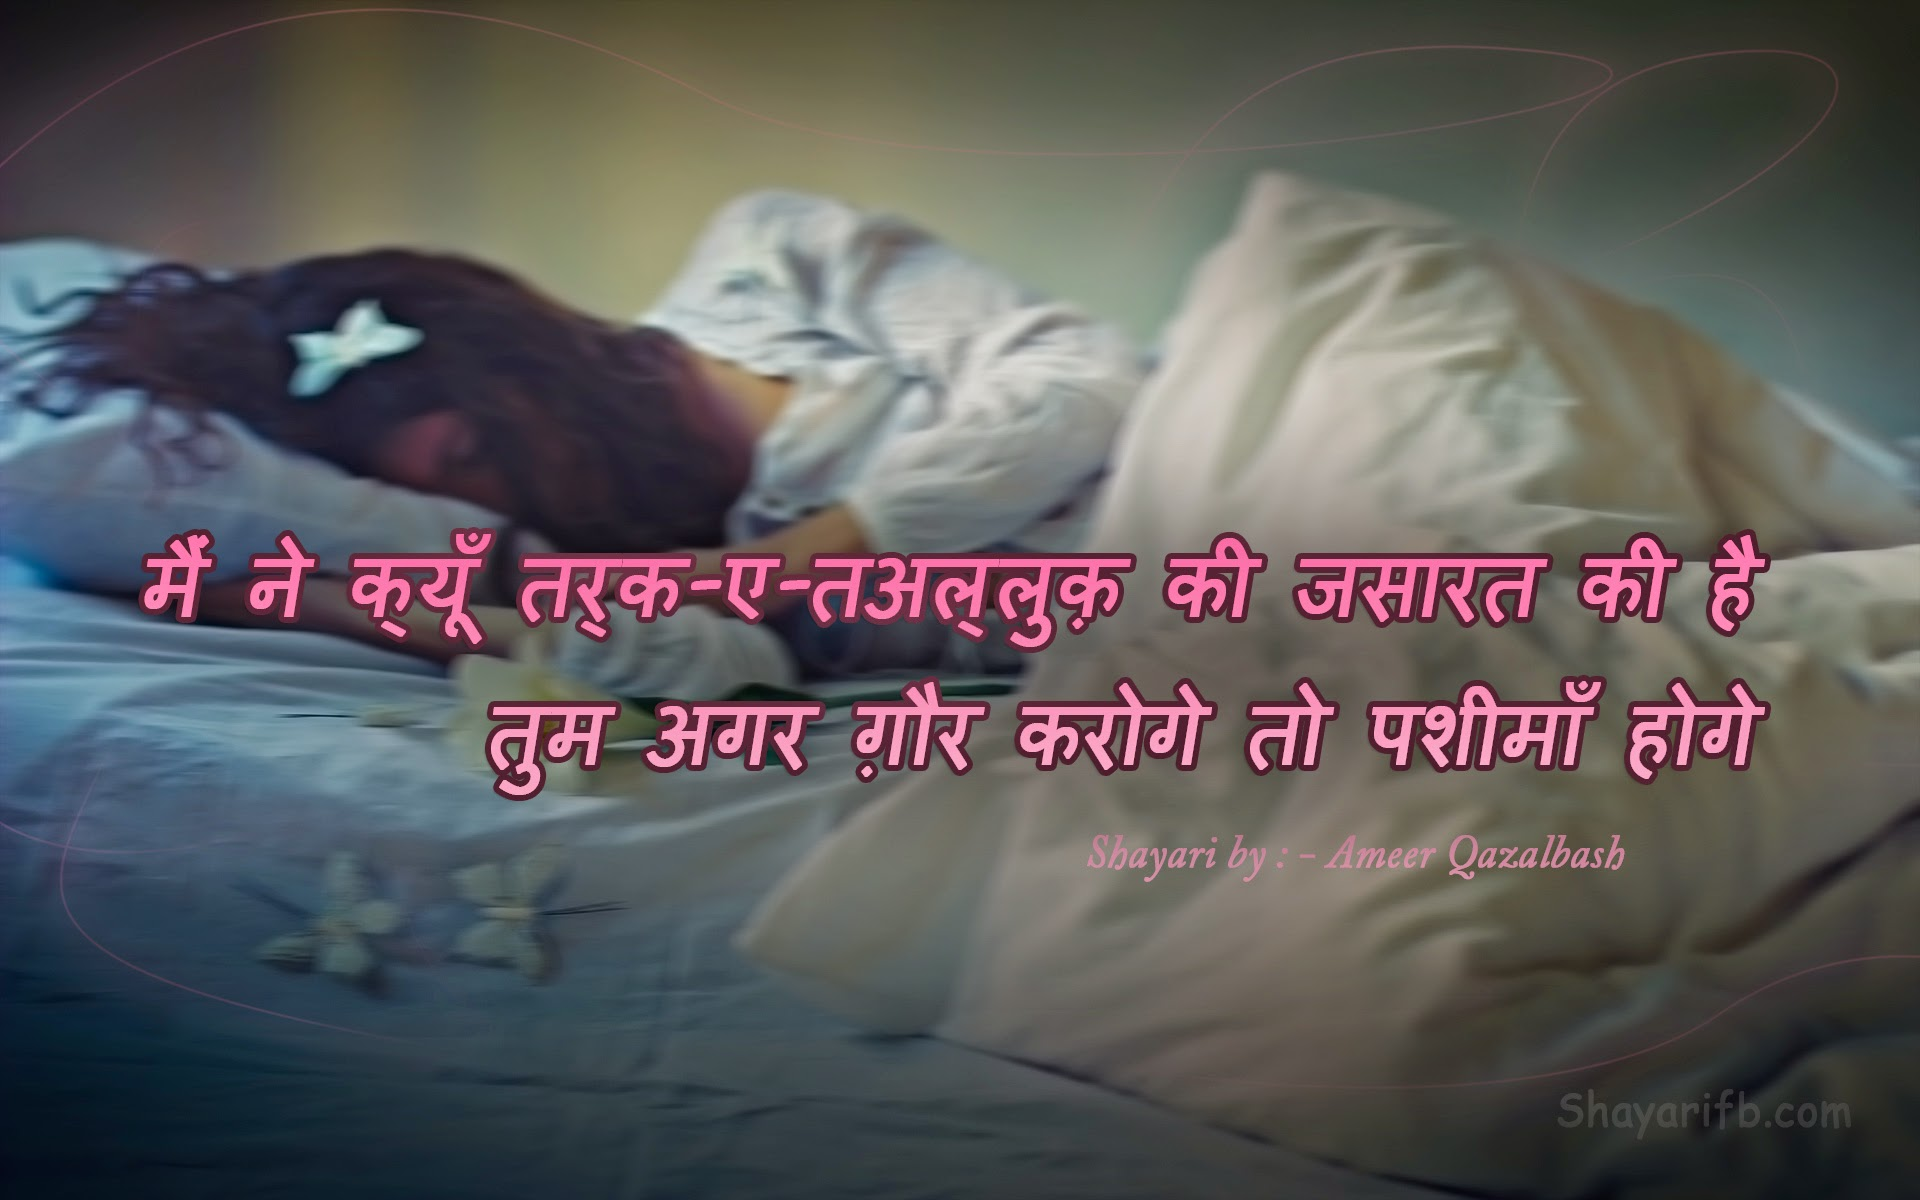 Hot Sad Love Wallpaper : Sad Images Sad wallpapers Sad Shayari